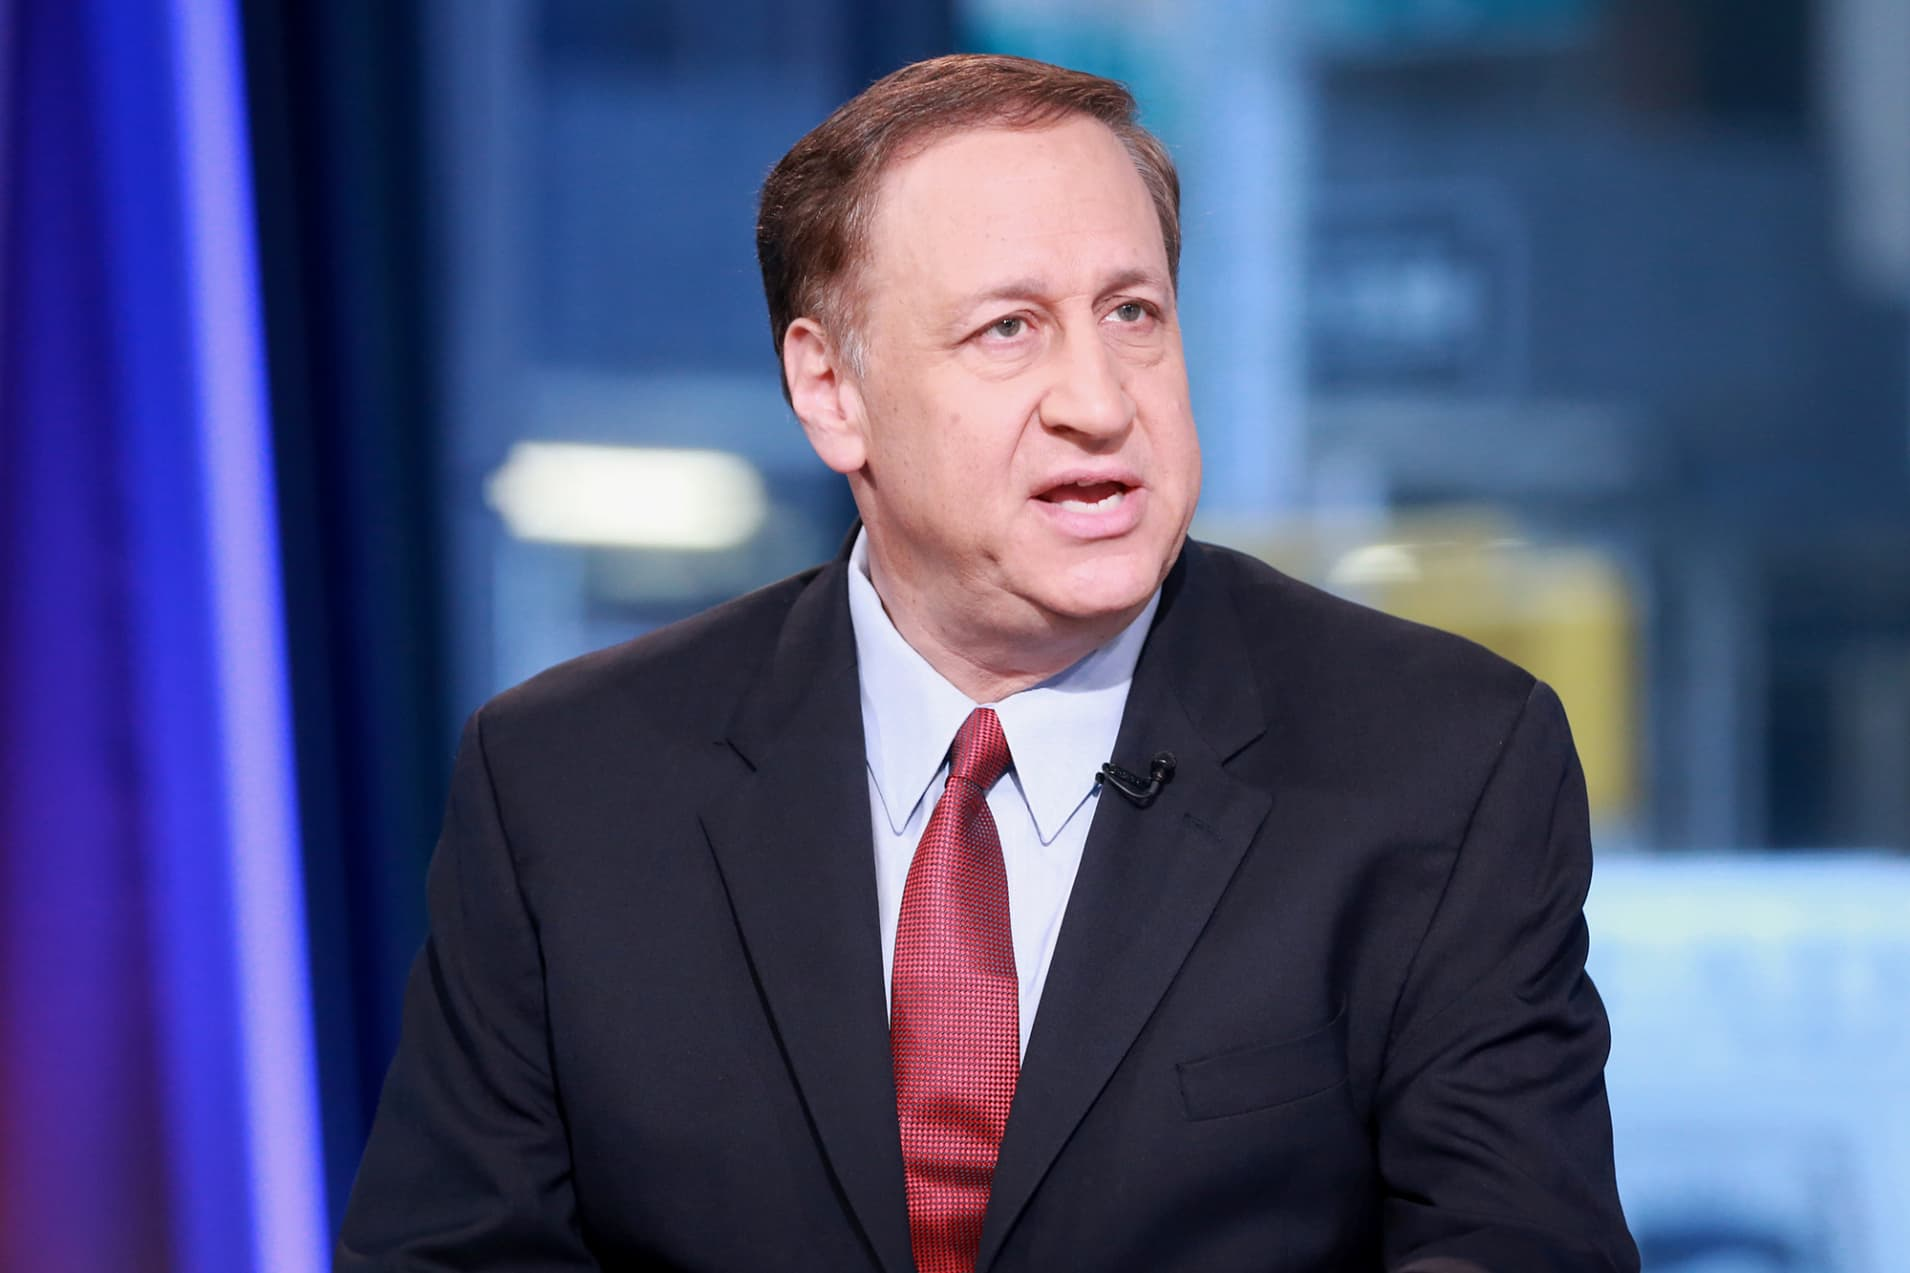 Watch CNBC's full interview with AMC Entertainment CEO Adam Aron